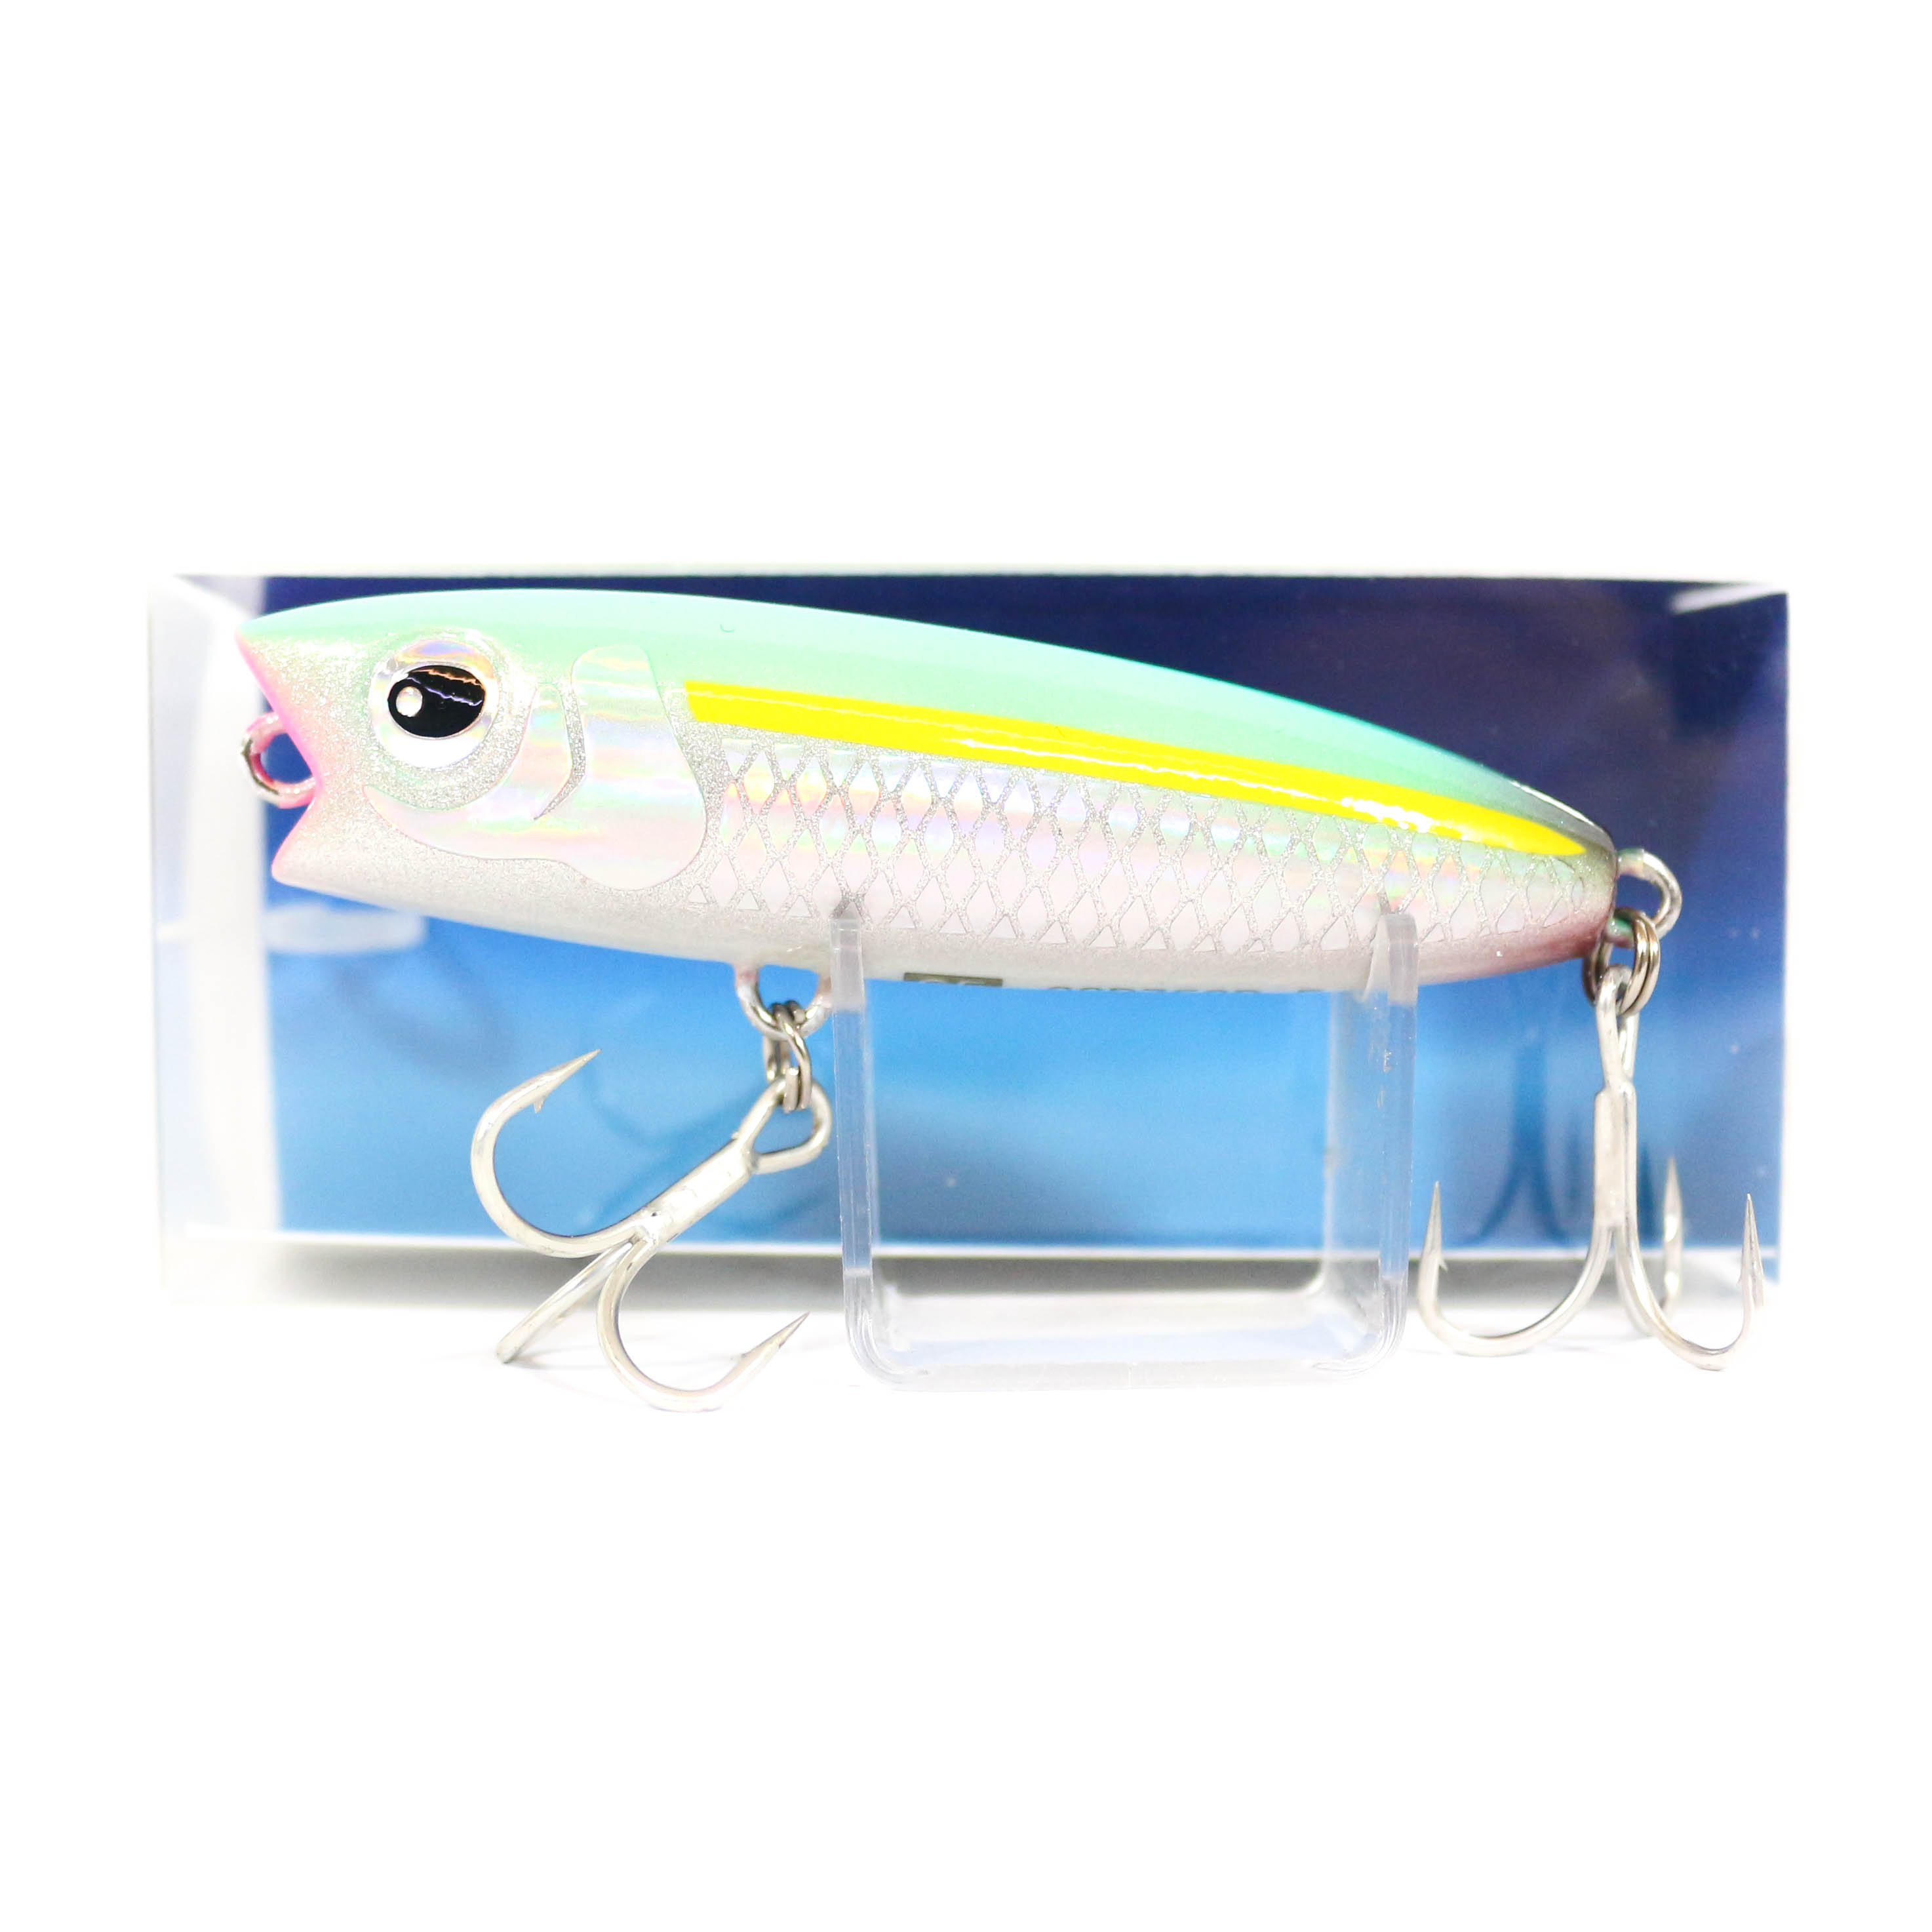 FCL Labo Stick Bait CSP 75 SPF Floating Lure BNF (4304)